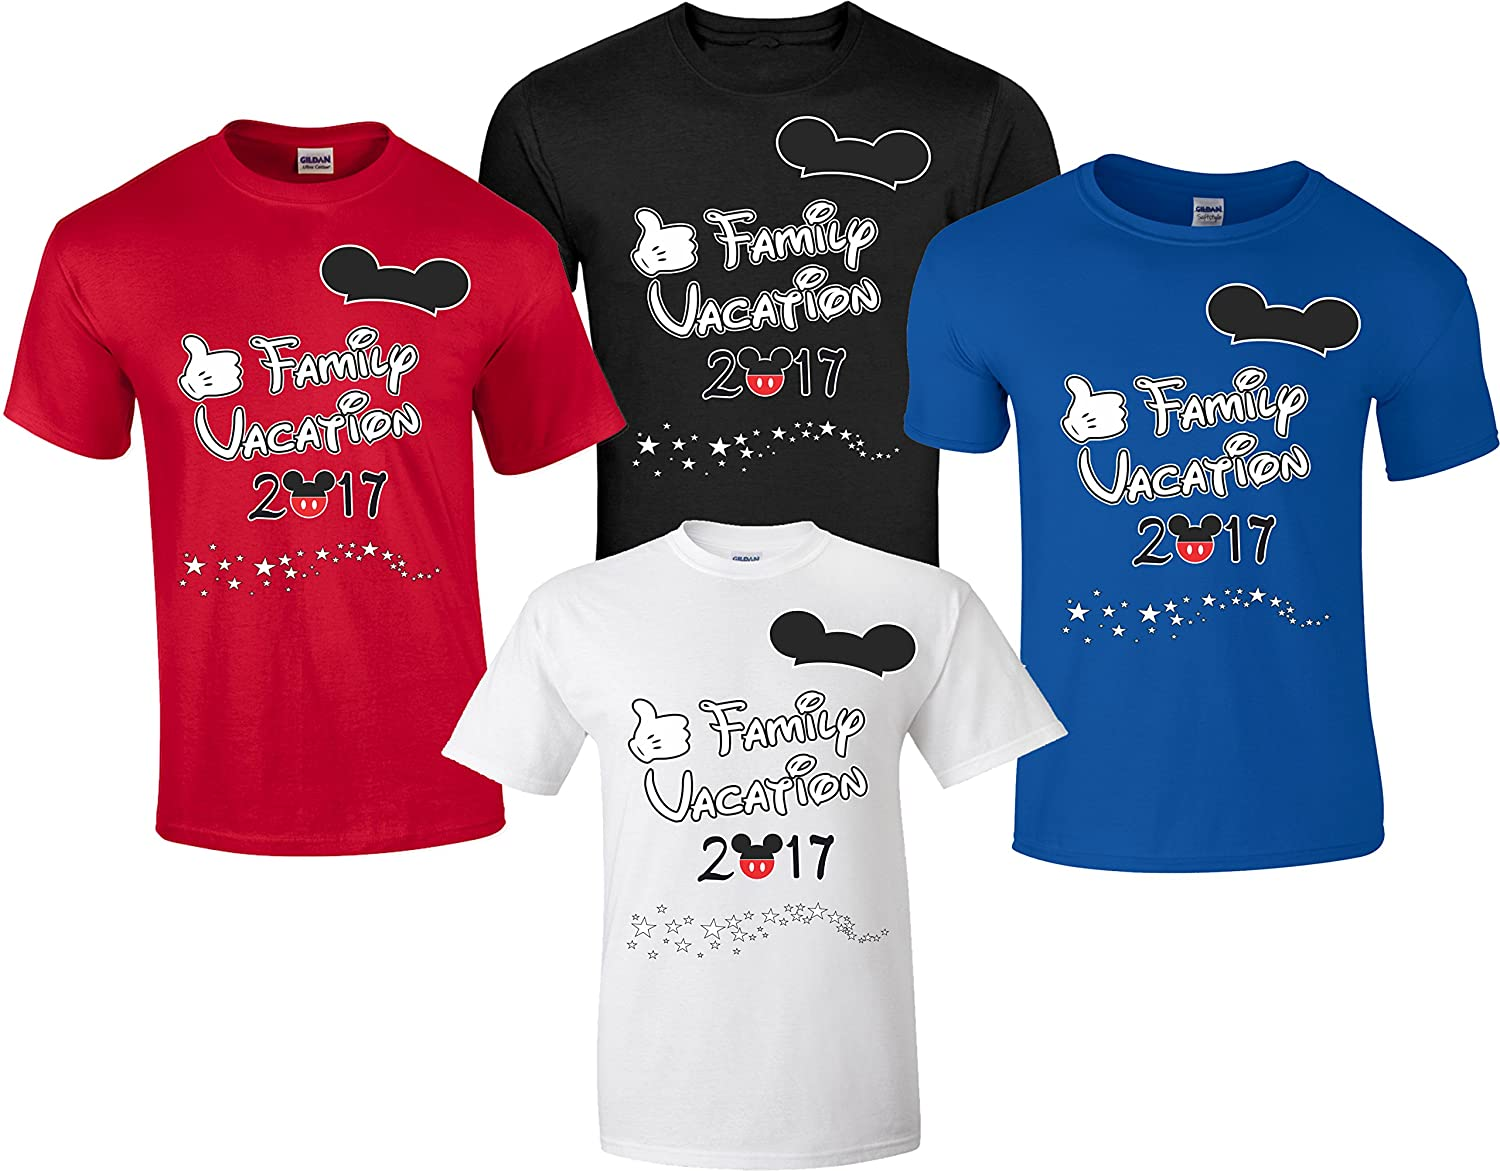 Amazon.com: New 2017/2018 Disney Family Vacation T-Shirts Matching ...